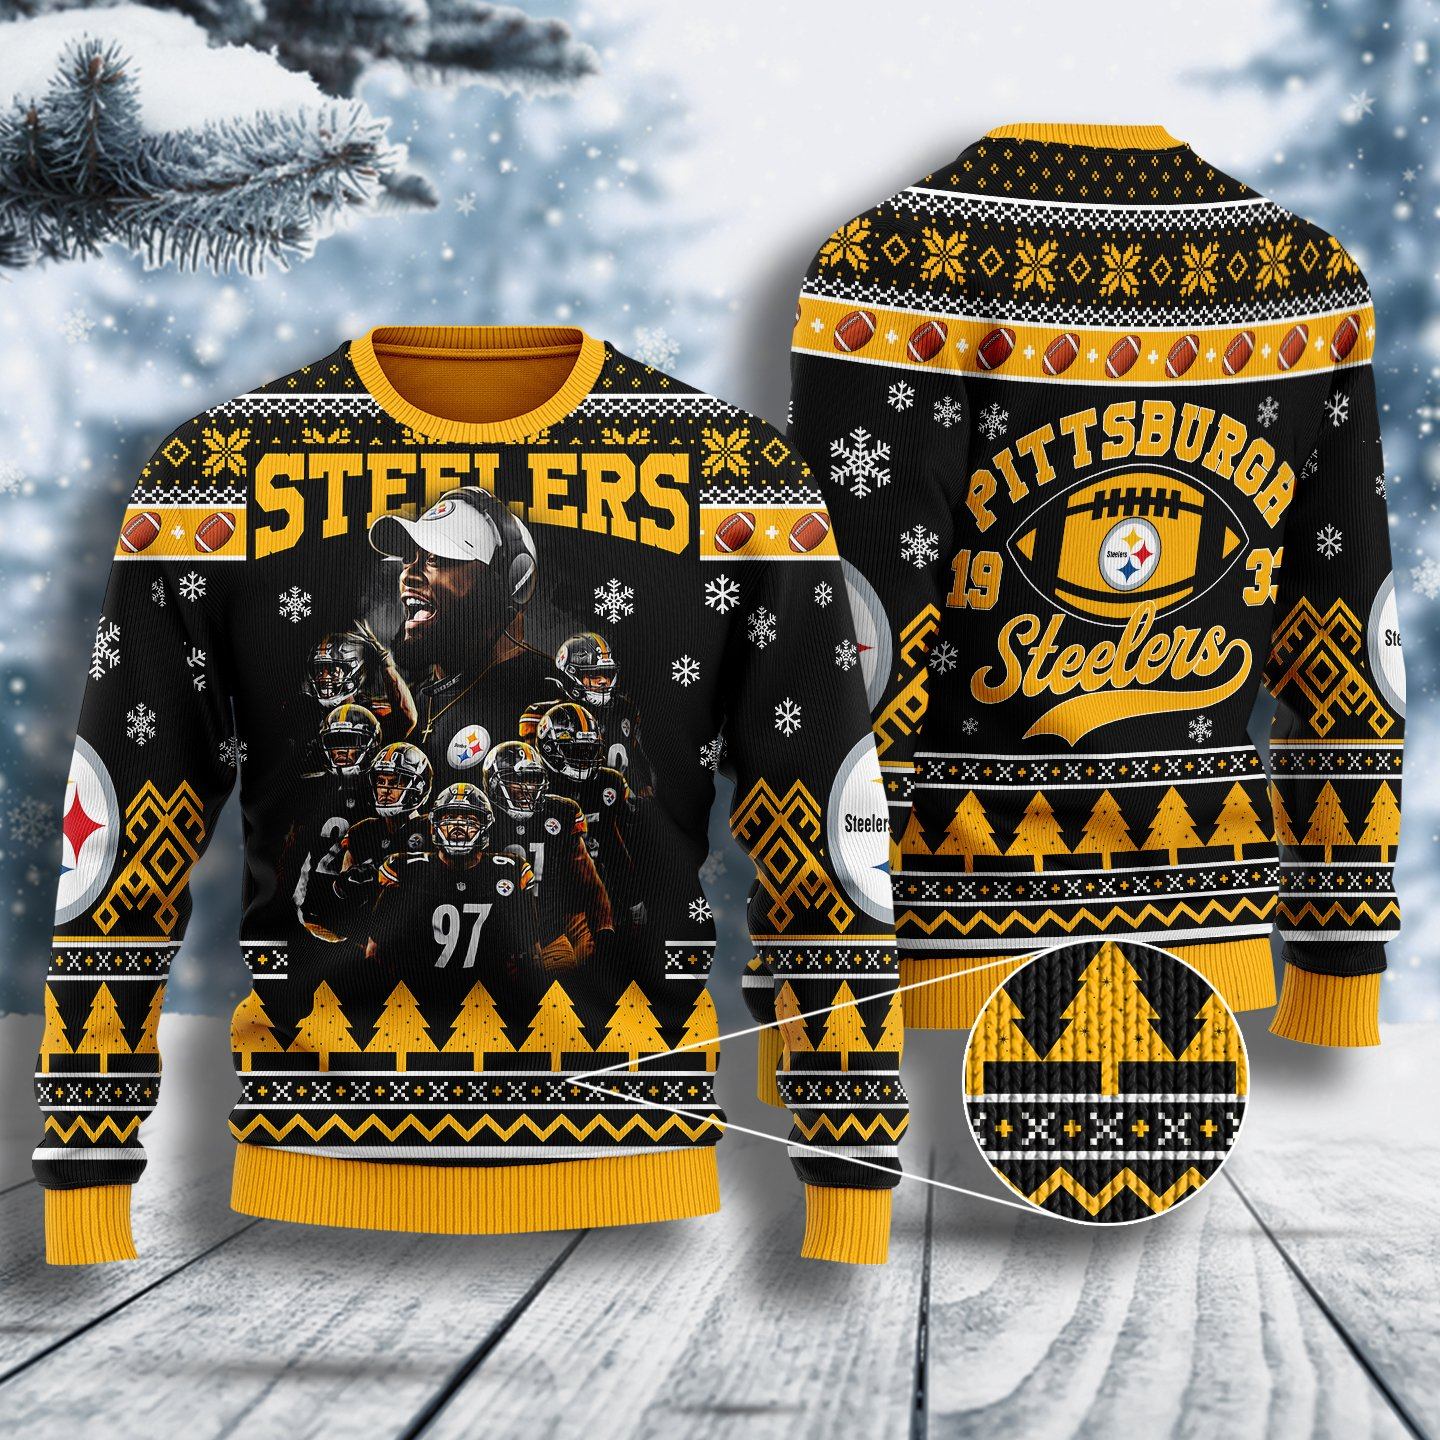 the pittsburgh steelers all over printed ugly christmas sweater 2